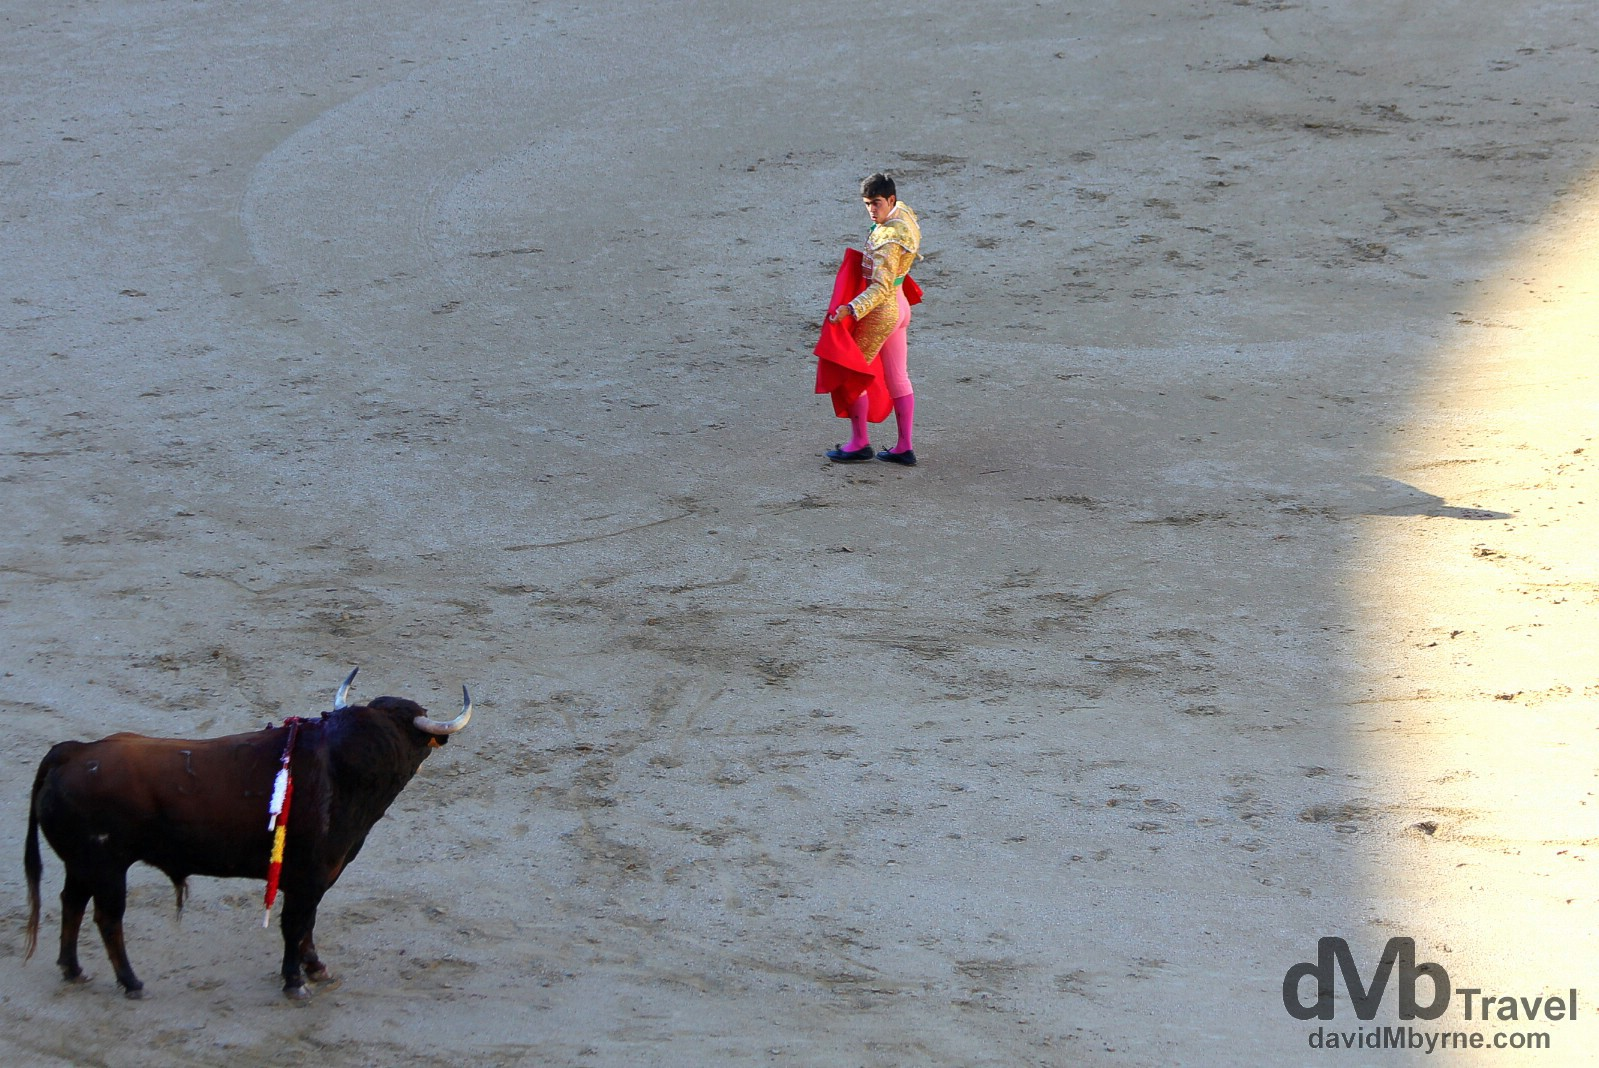 Bullfighting in Plaza de Toros, Las Ventas, Madrid, Spain. June 15th, 2014.